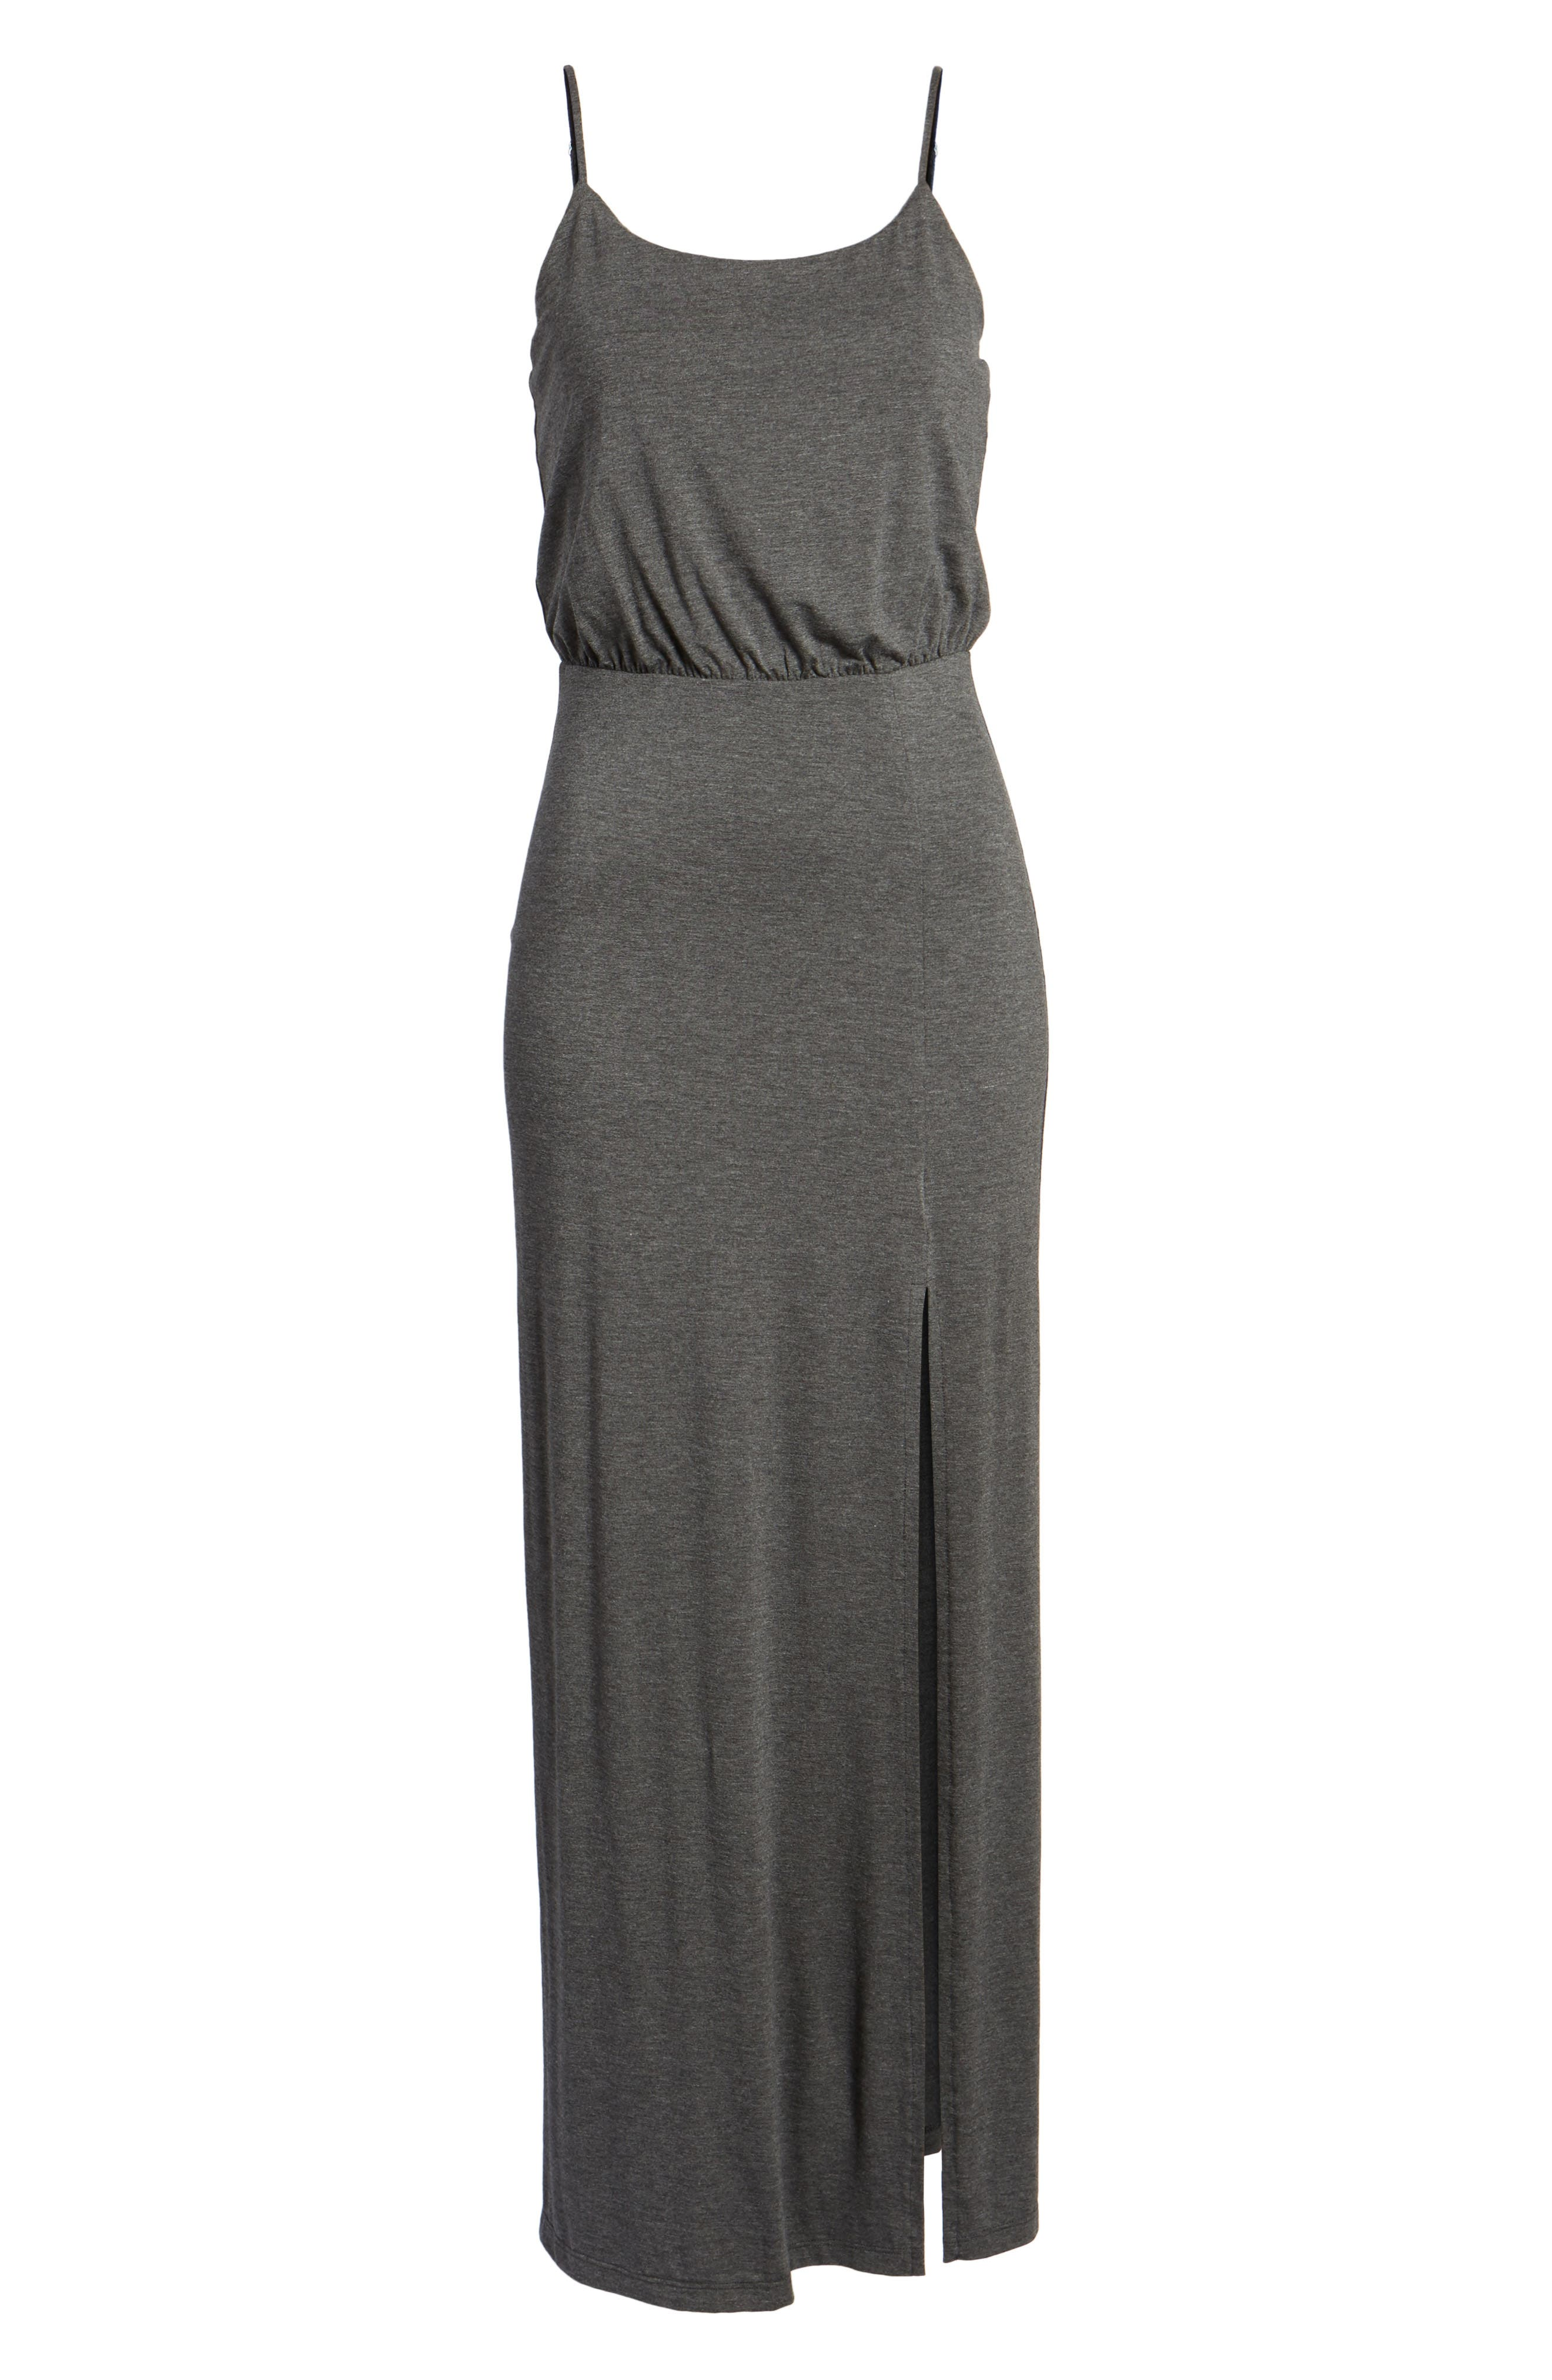 Knit Maxi Dress,                             Alternate thumbnail 6, color,                             Heather Charcoal